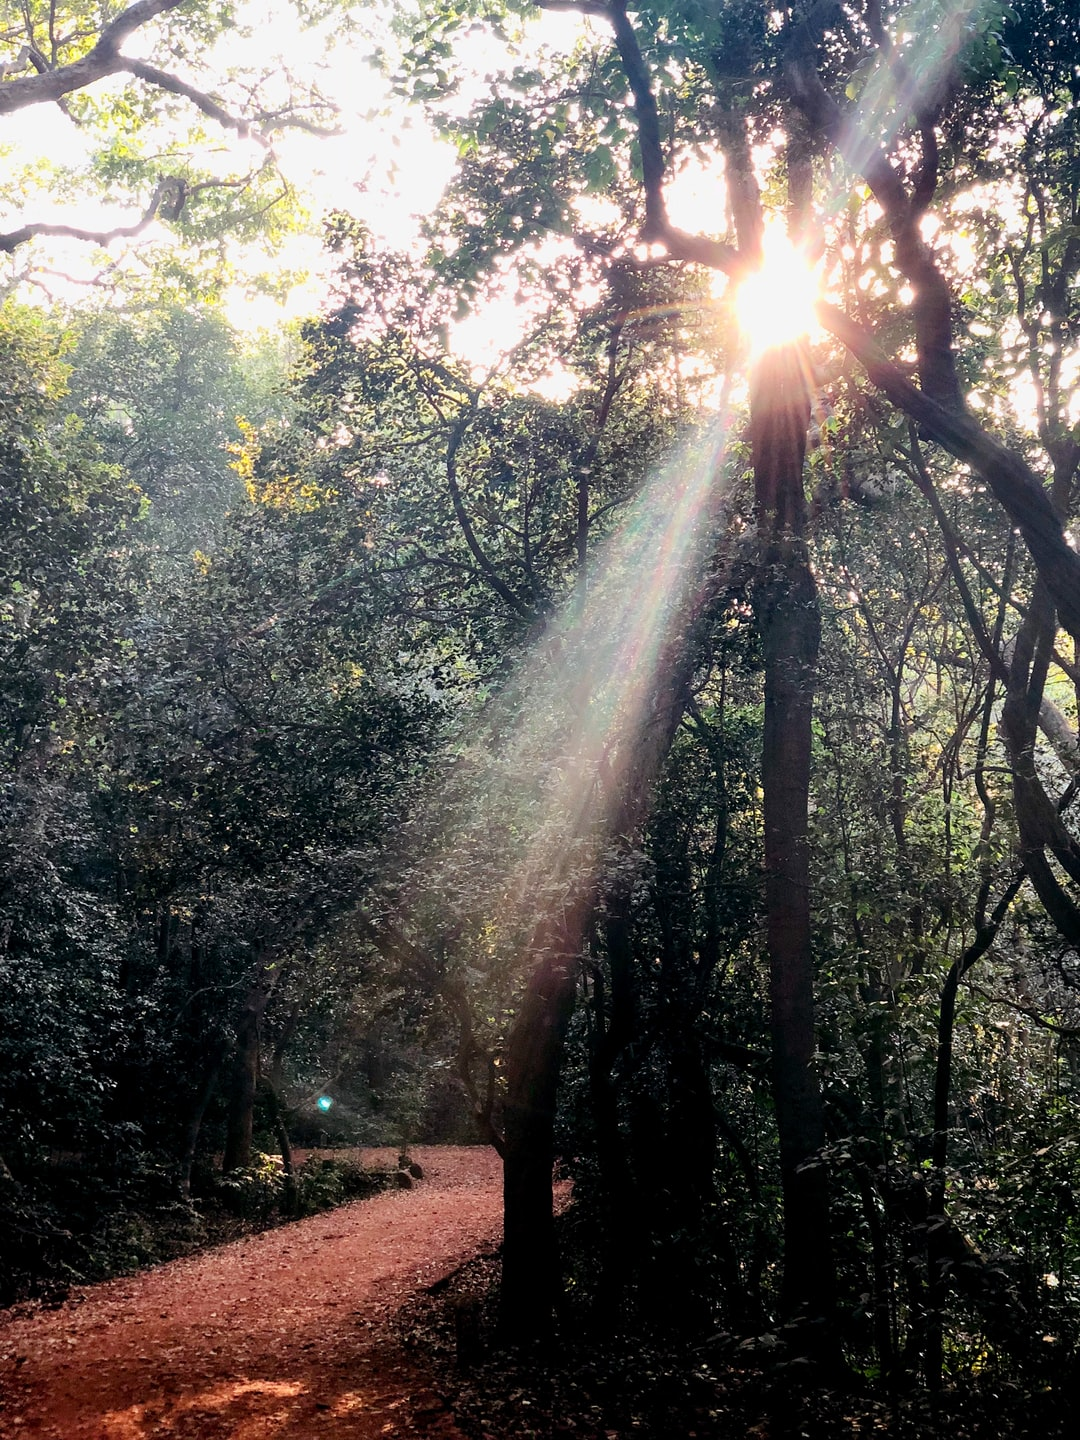 Piercing sun rays through the dense forest (Not by me)